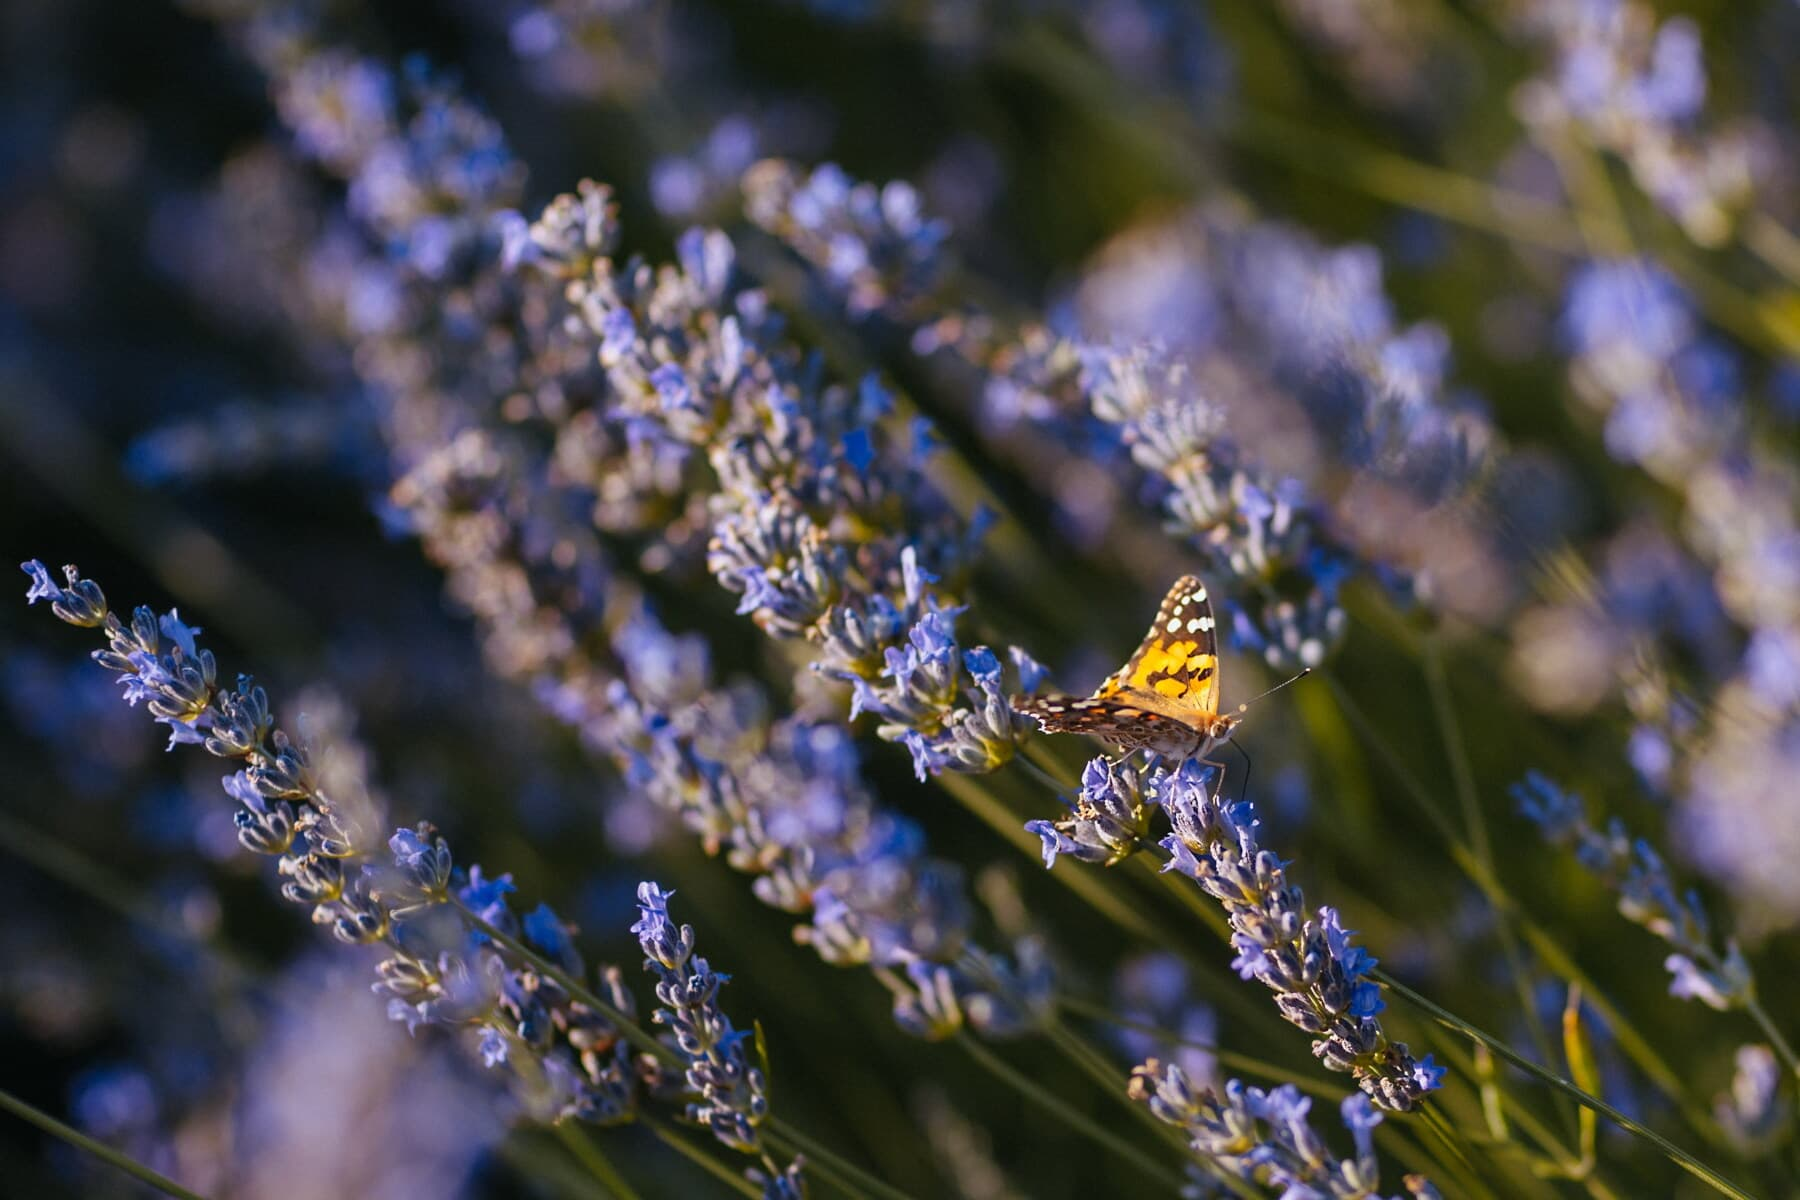 butterfly, light brown, insect, lavender, butterfly flower, garden, nature, flower, outdoors, upclose